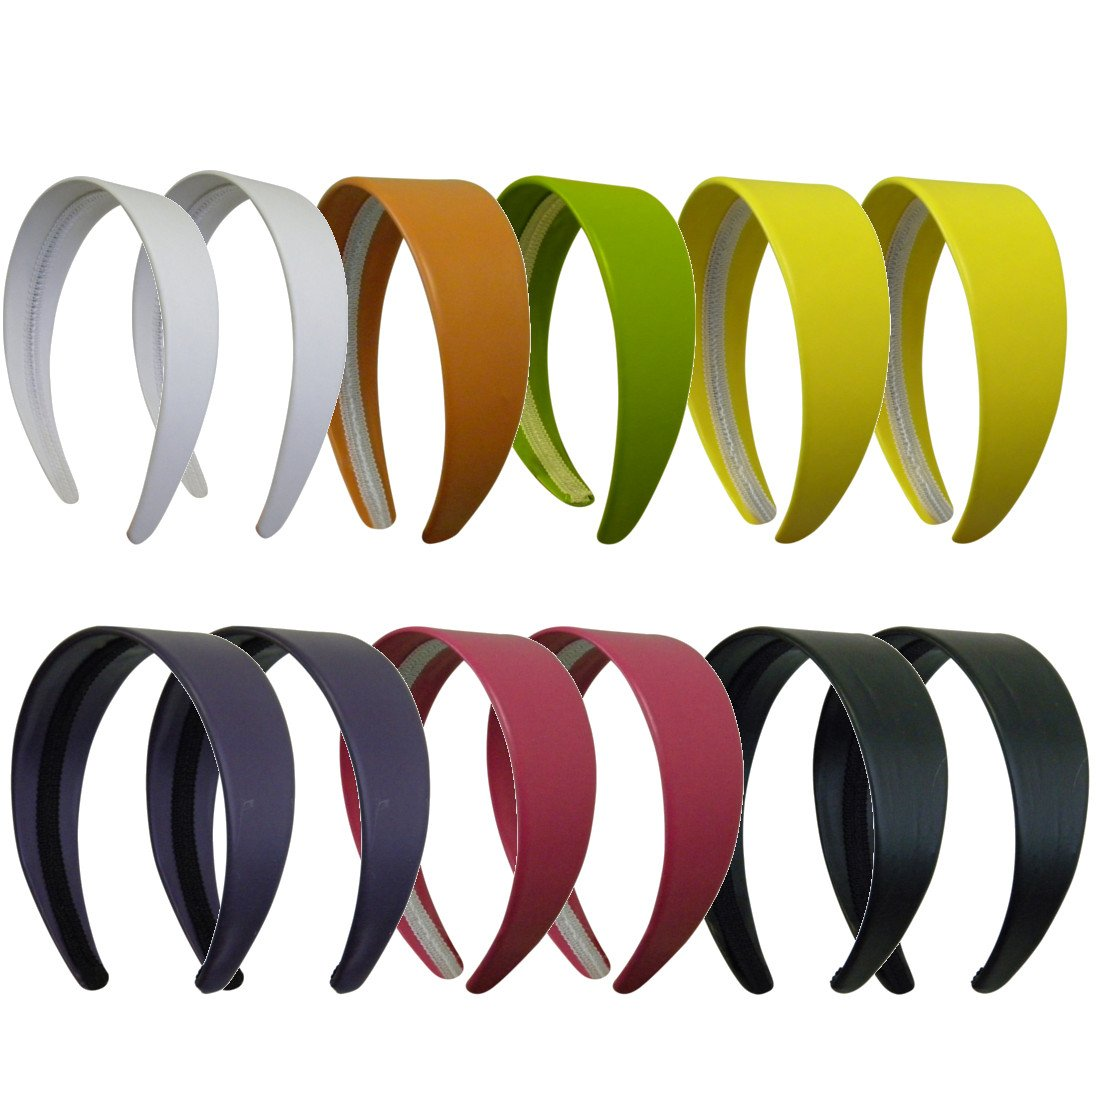 Multi set 2 Inch Wide Leather Like Headband Solid Hair band for Women and Girls - Set of 12